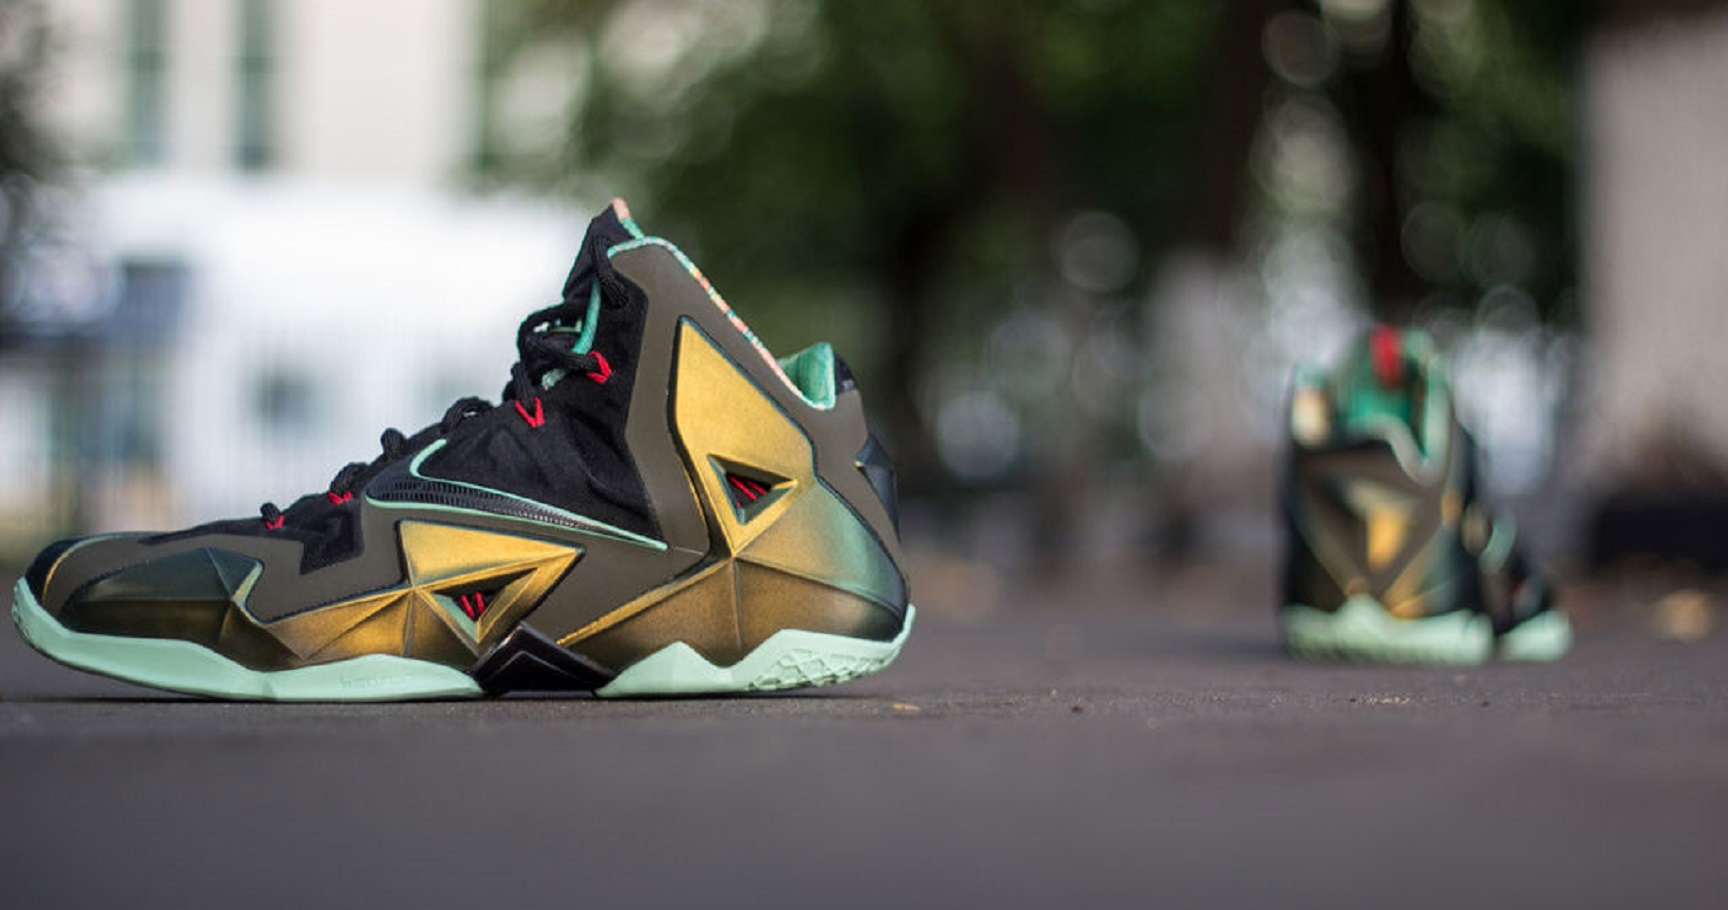 The Coolest Basketball Shoes In The World